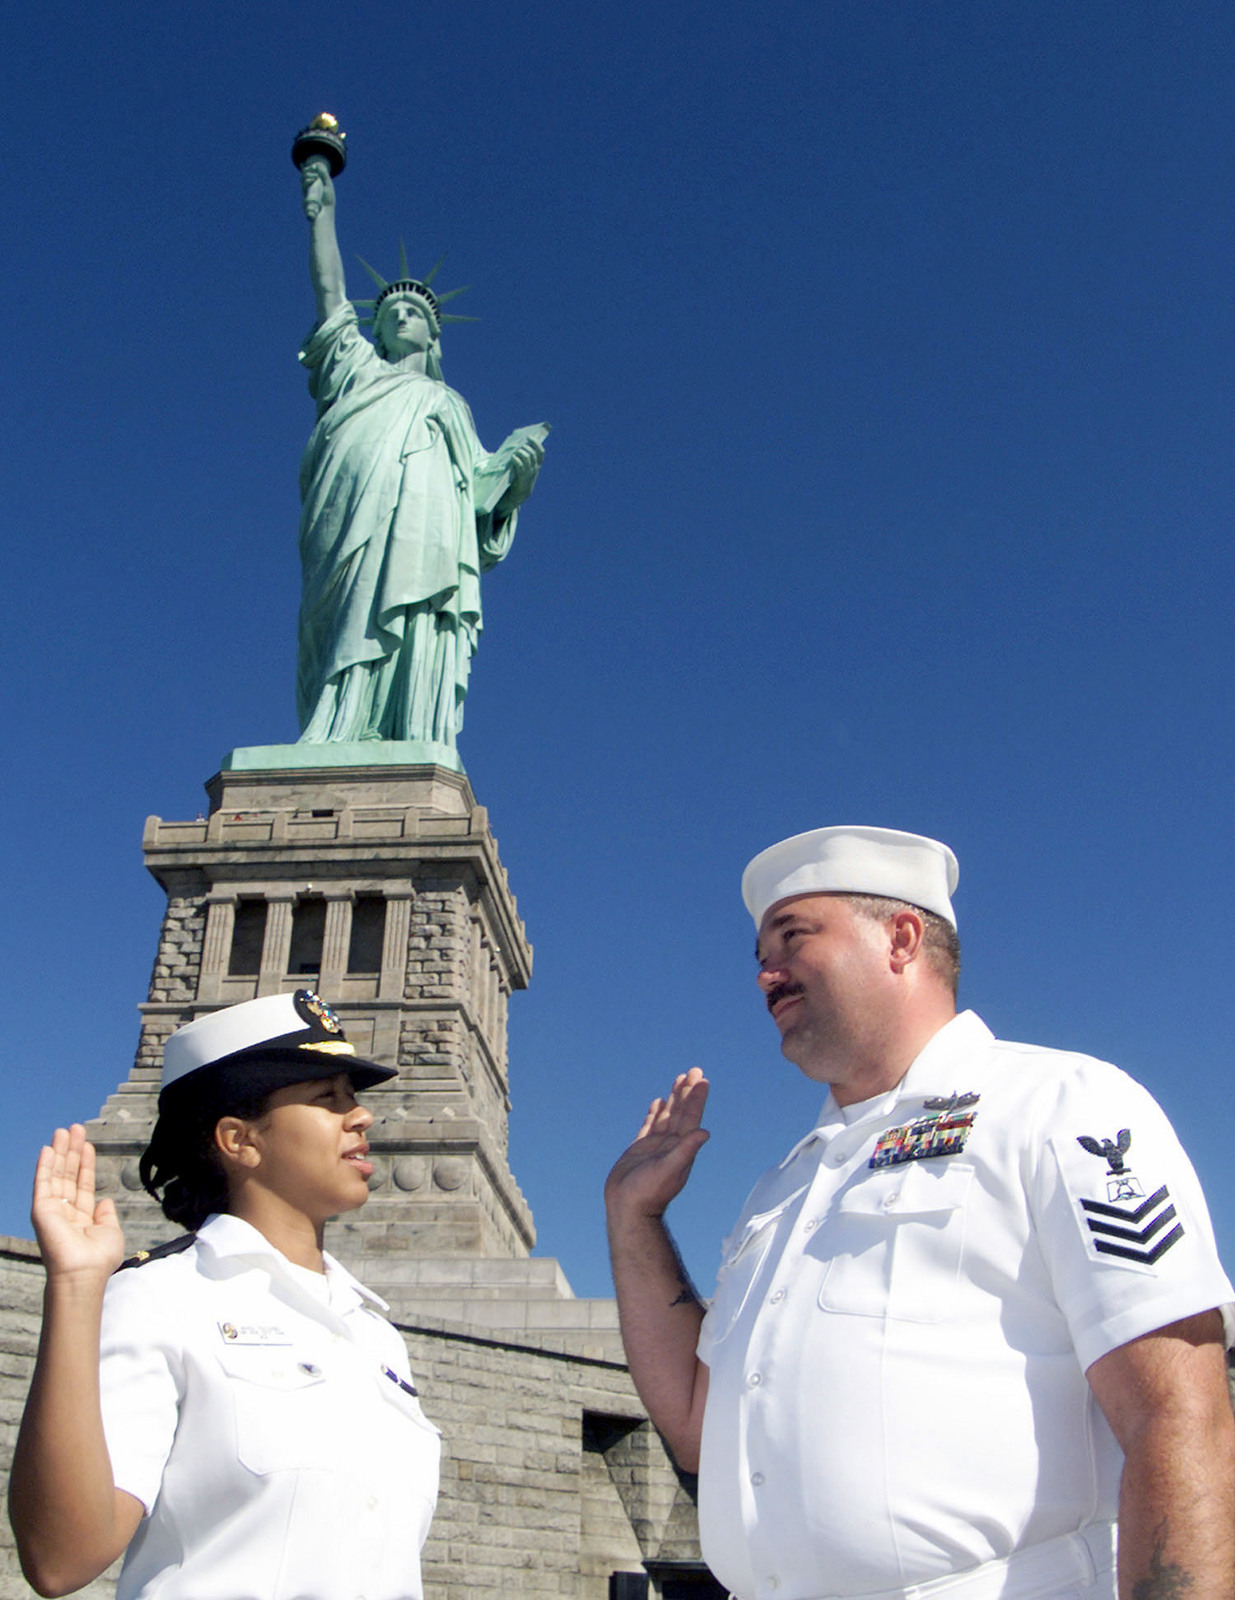 ENSIGN (ENS) Maria Navarro assigned to the USS HUE CITY (CG 66), re-enlists her shipmate Mess SPECIALIST 1ST Class (MS1) John Carruthers in a special ceremony on Liberty Island, New York